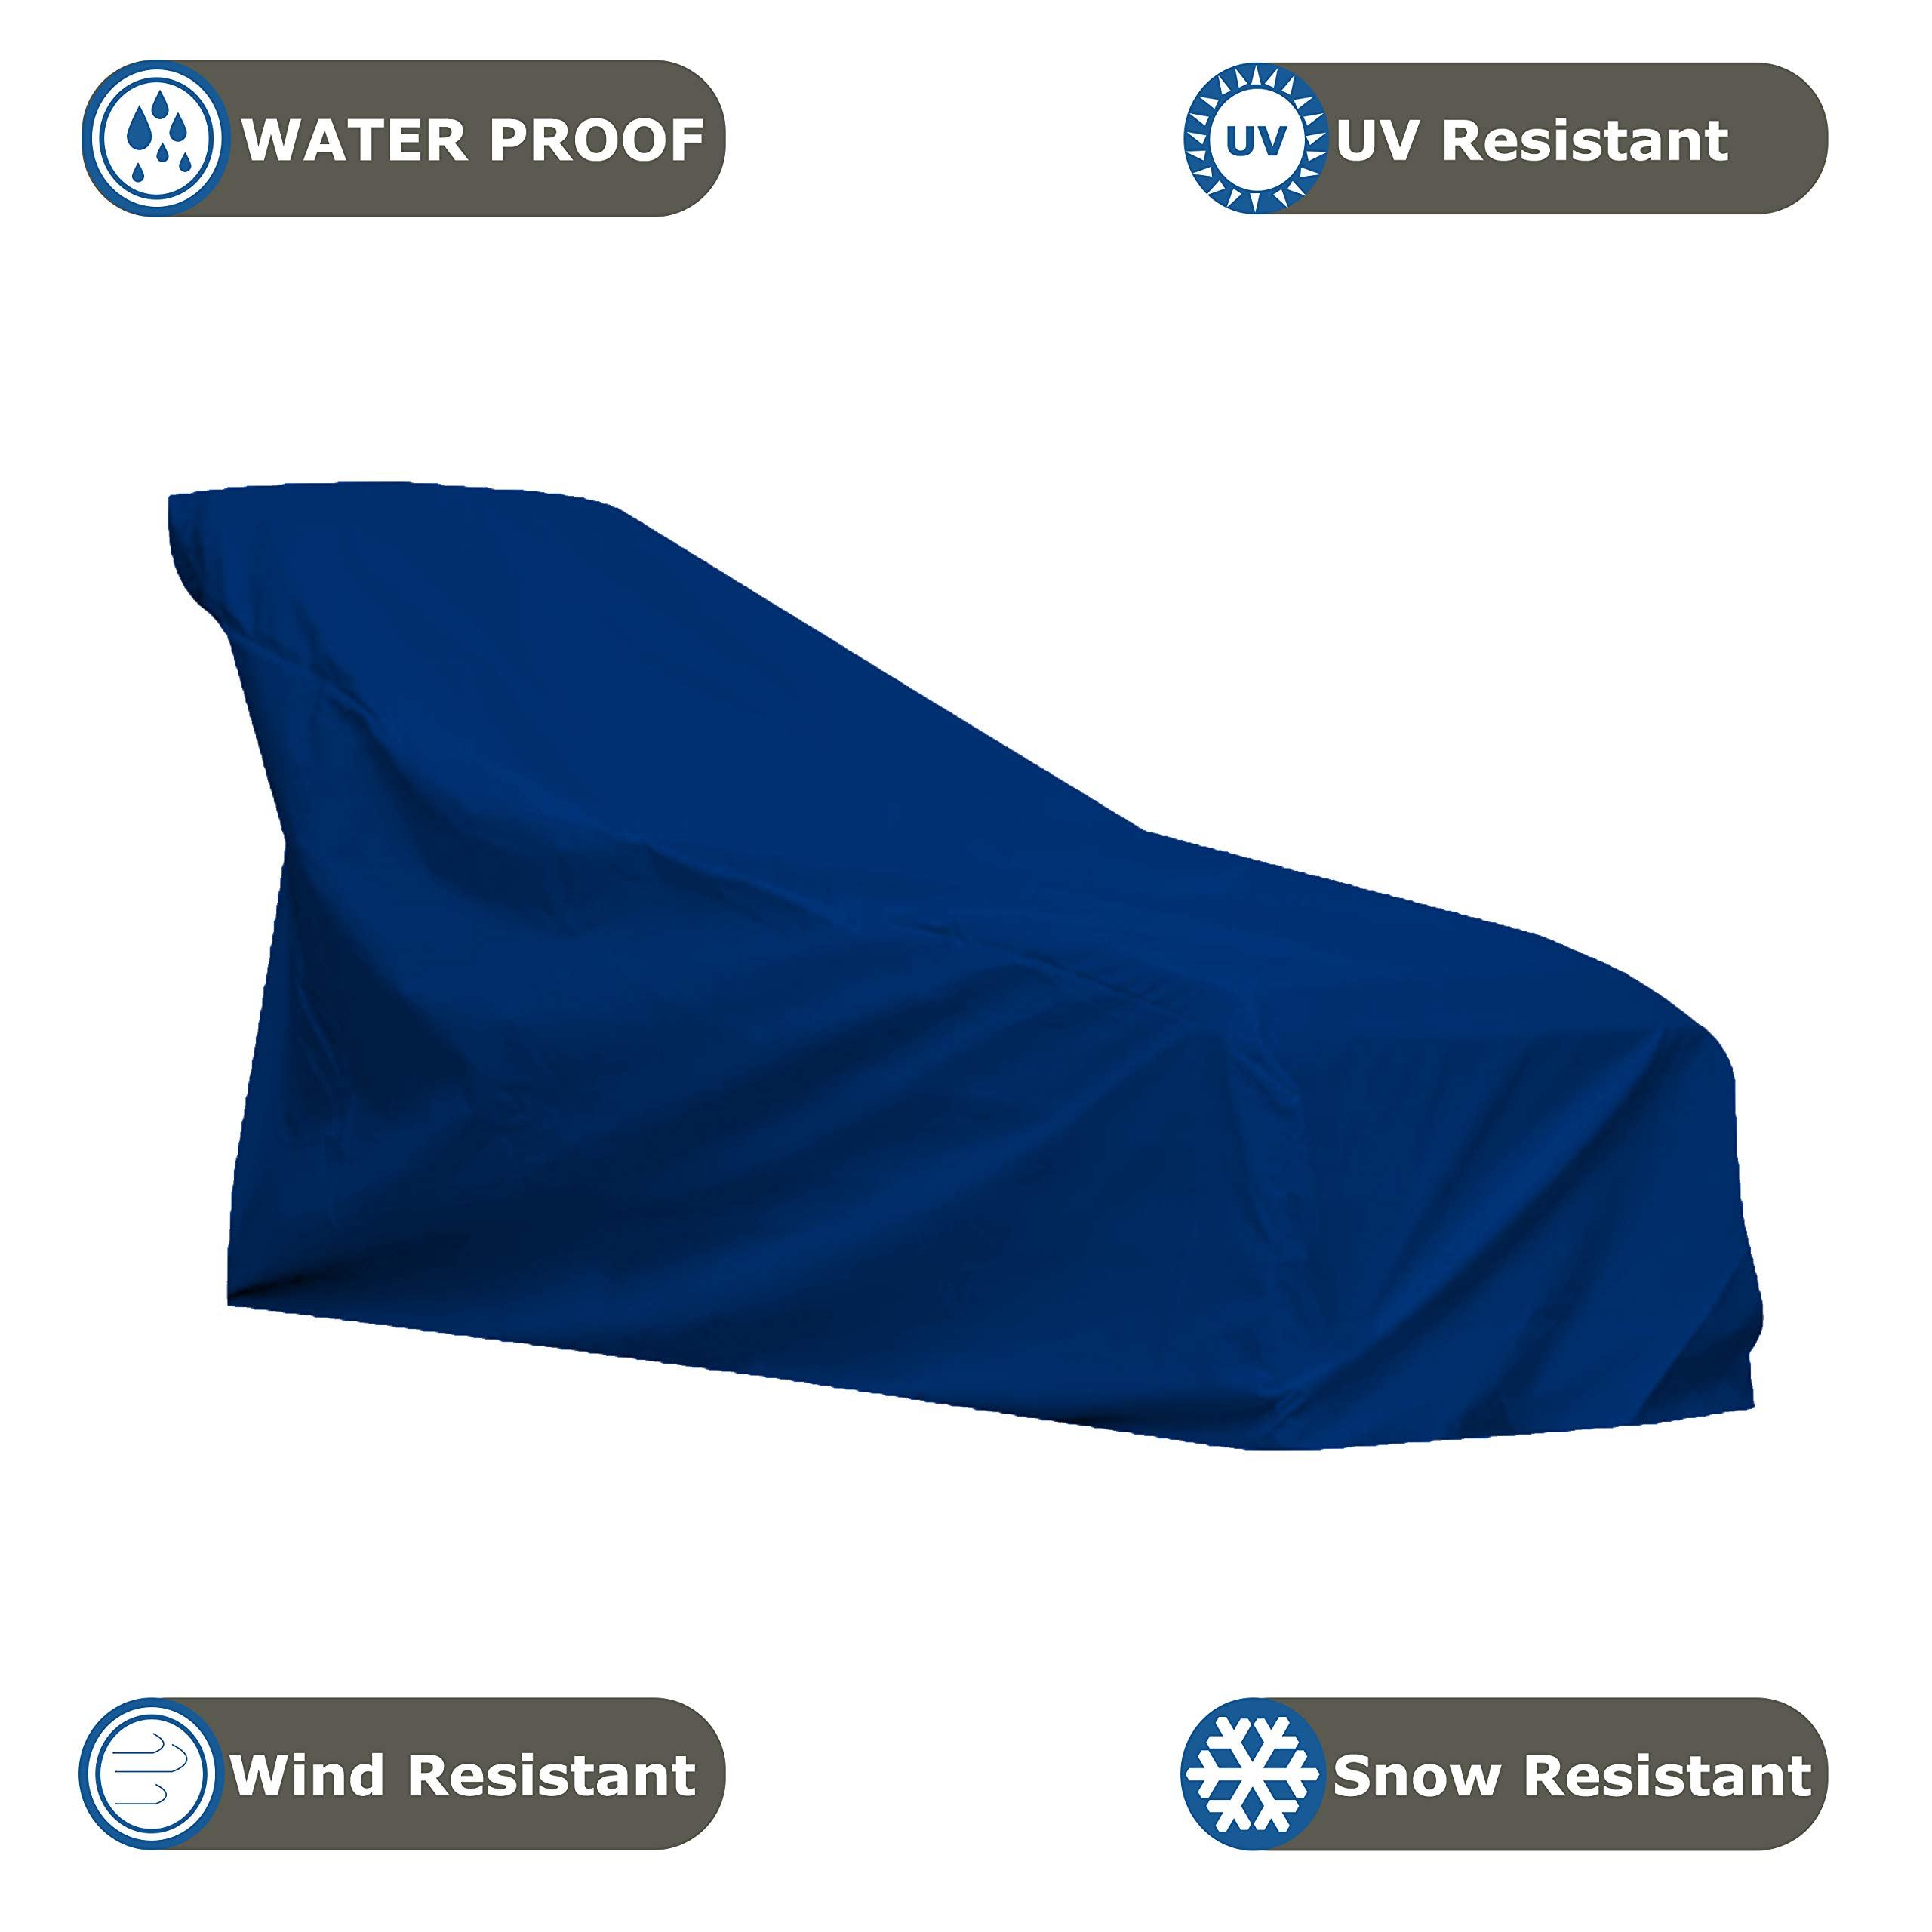 COVERS & ALL Chaise Lounge Cover 18 Oz Waterproof - 100% UV & Weather Resistant Outdoor Chaise Cover PVC Coated with Air Pockets and Drawstring for Snug Fit (80W x 34D x 32H, Blue) by COVERS & ALL (Image #3)